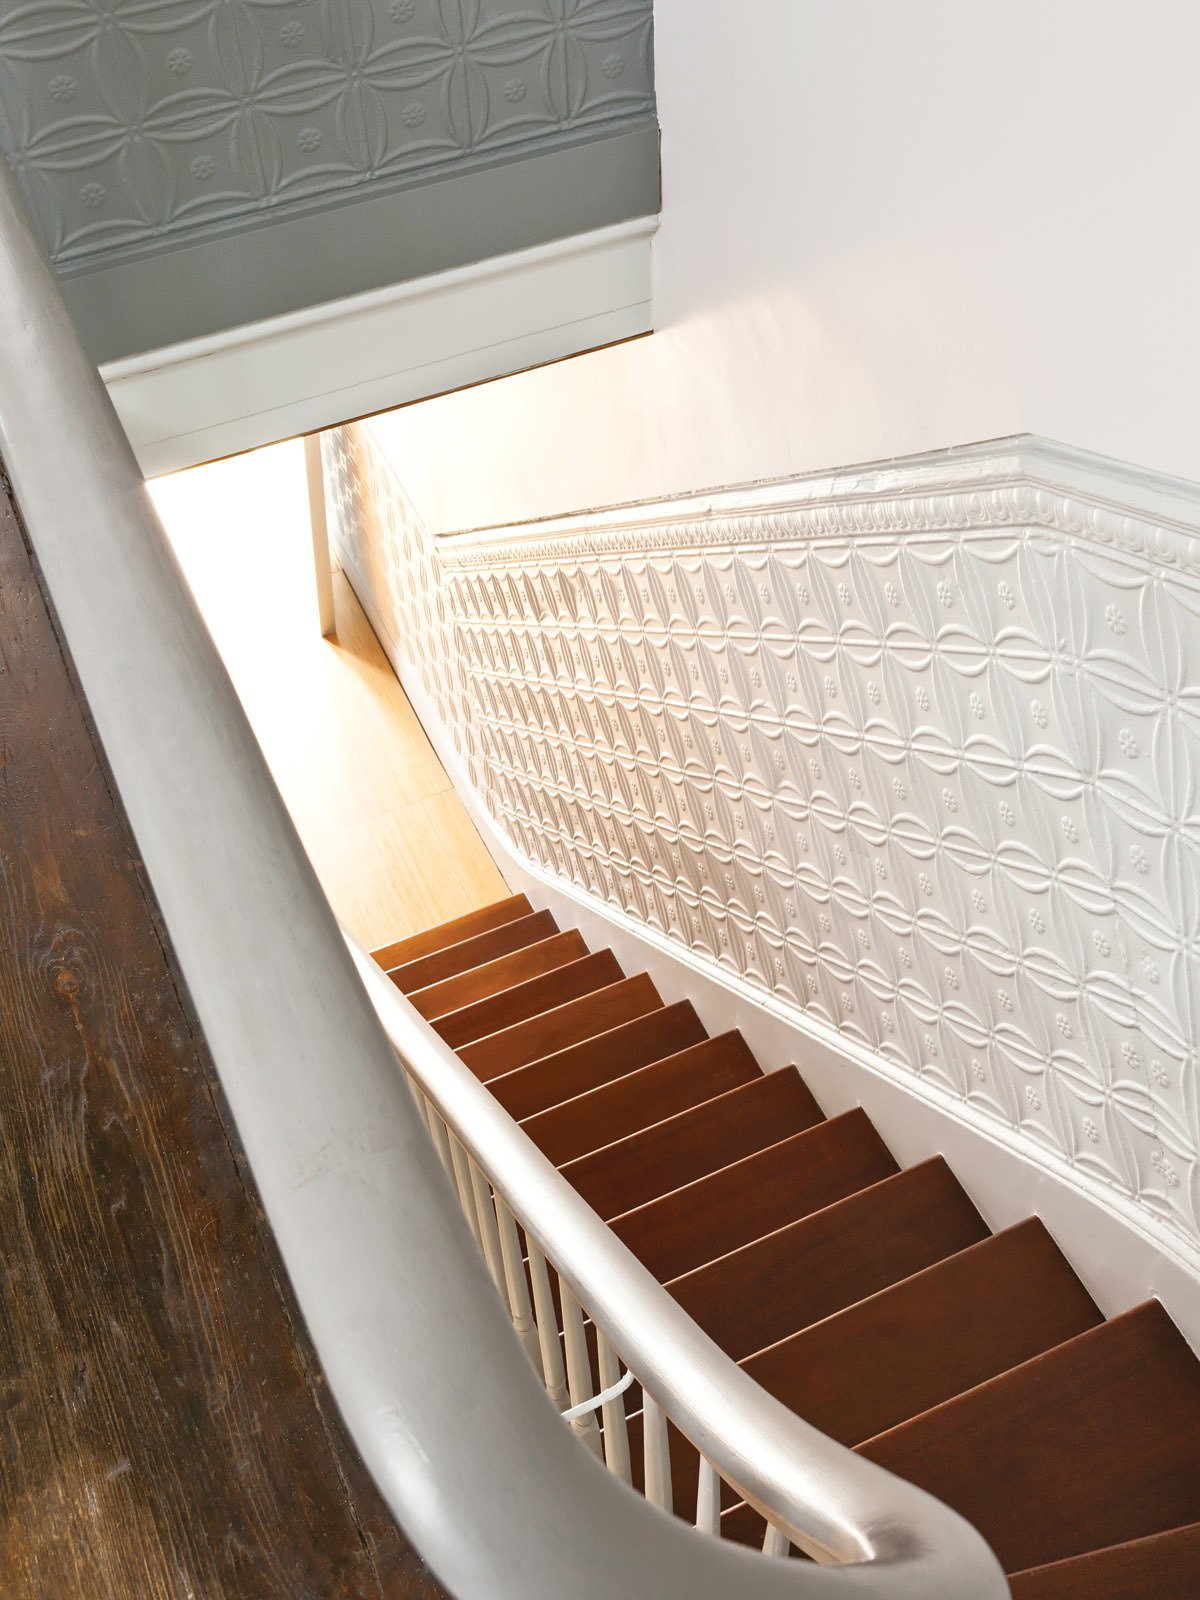 The tin panels lining the stairs are original to the house. Tagged: Staircase and Wood Tread.  Lounge by Jim Tattersall from New Prospects